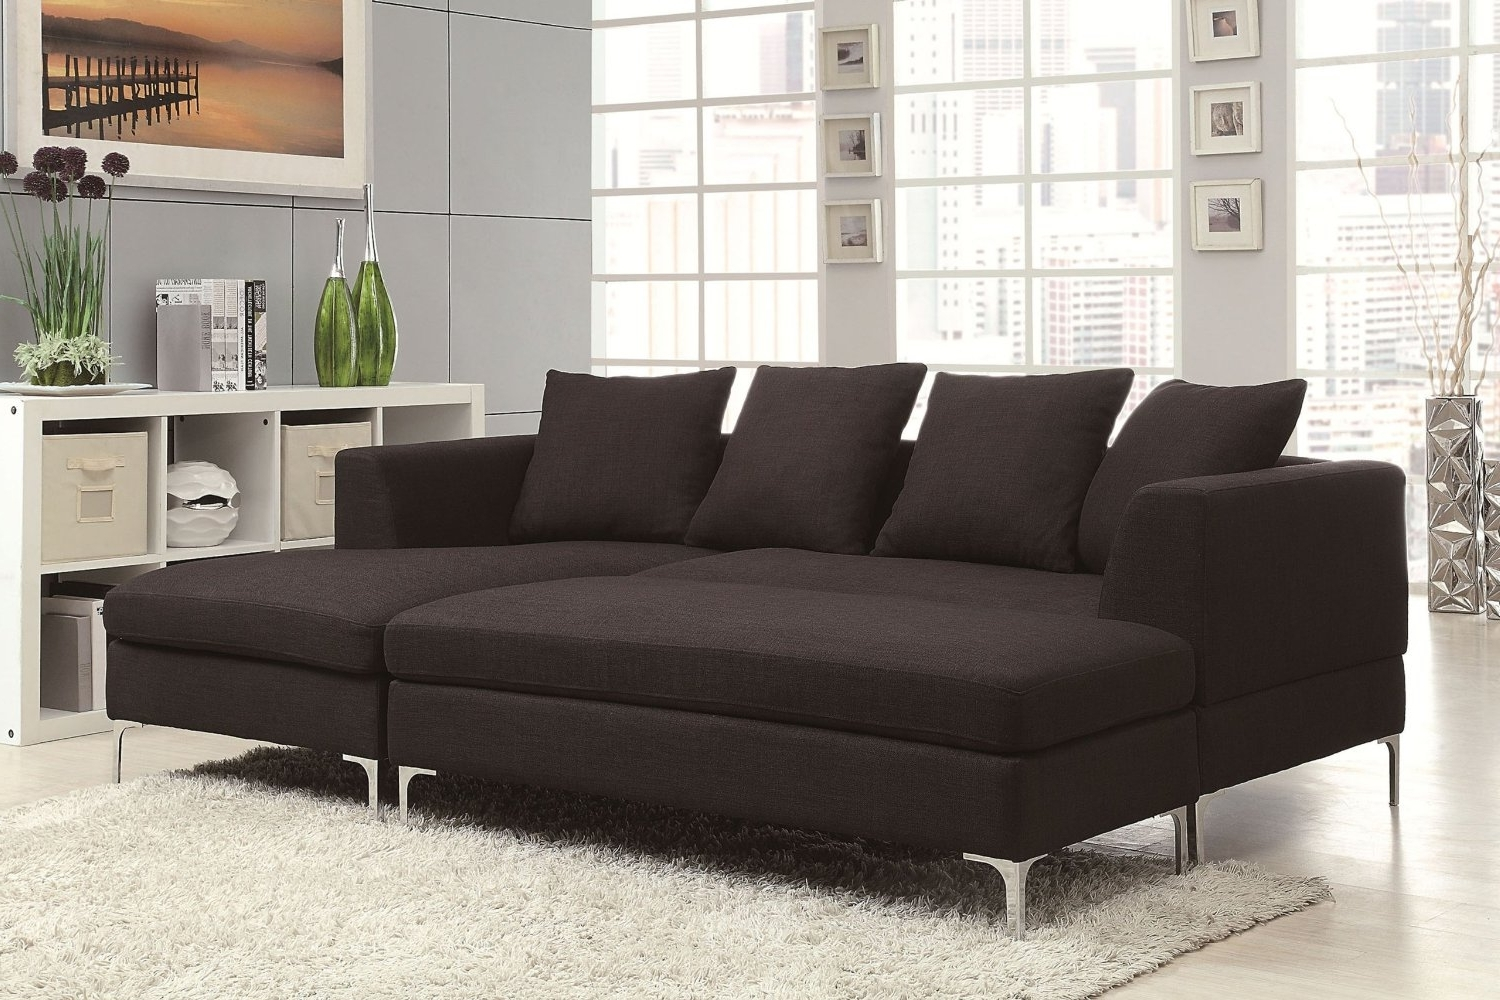 Most Up To Date Sofa : Modular Sofa Reclining Sectional With Chaise Small Regarding Sectional Chaise Sofas (View 6 of 15)